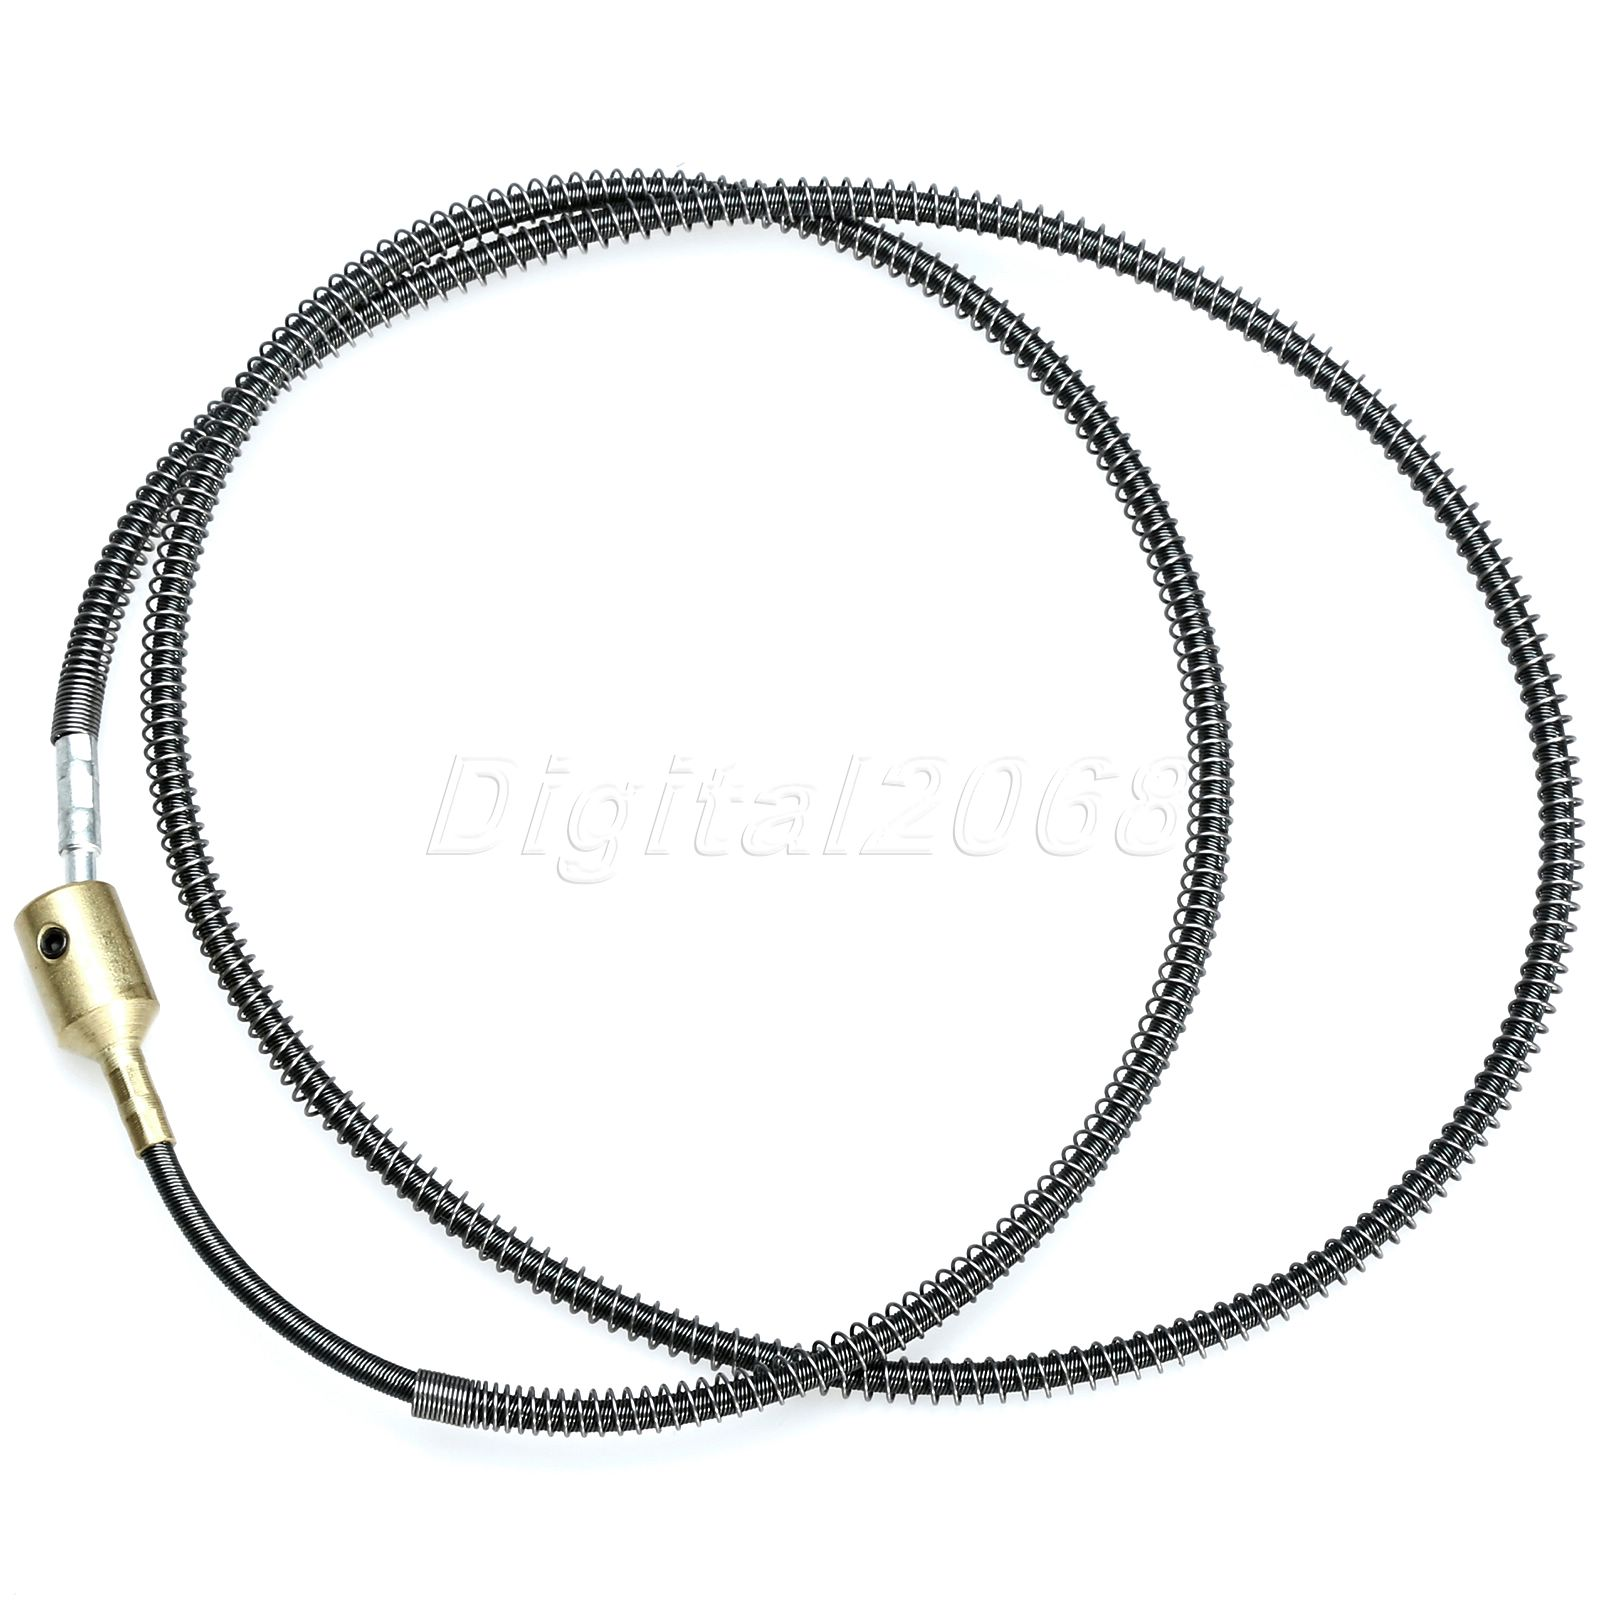 New Flexible Metal Inner Shaft Cable F/Flex Shaft For Foredom Flex Shaft Rotary Motor Tools tyumen battery 6 ст 95ач об